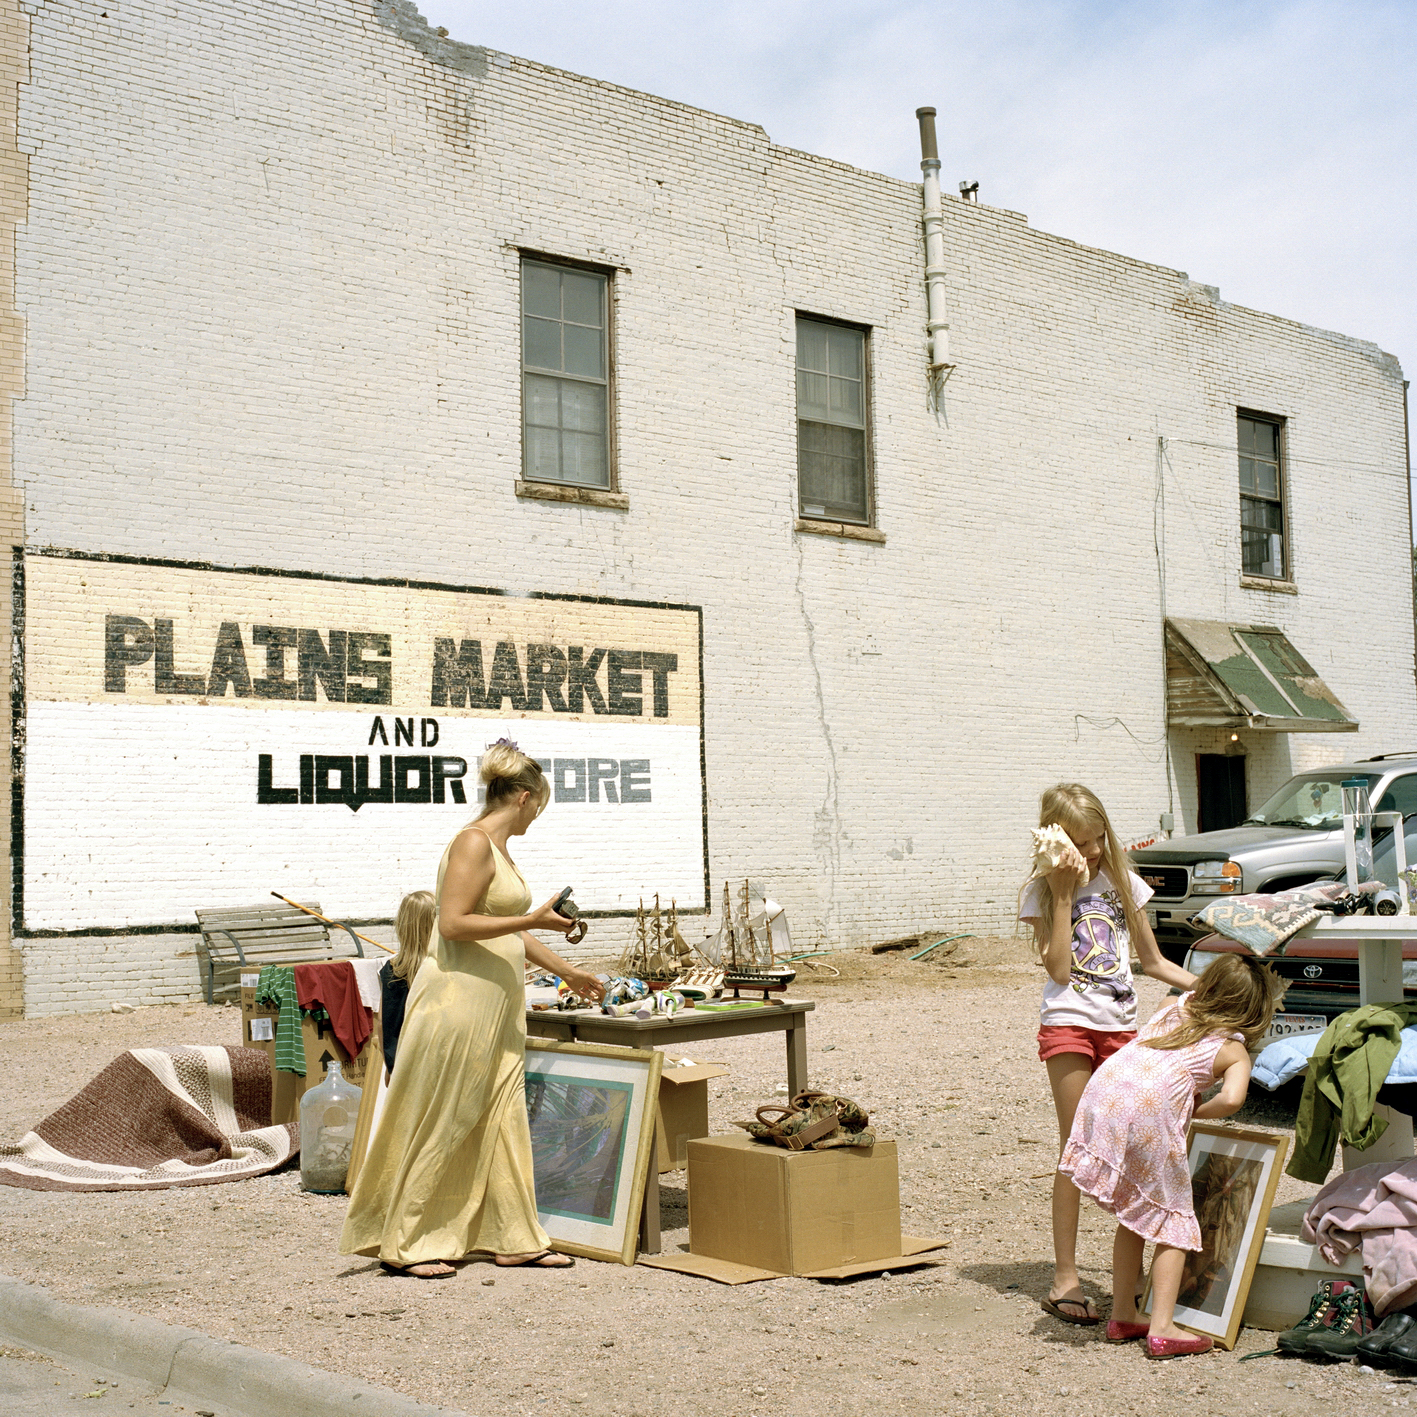 07_Plains Market_Colorado USA 2012®RonanGuillou